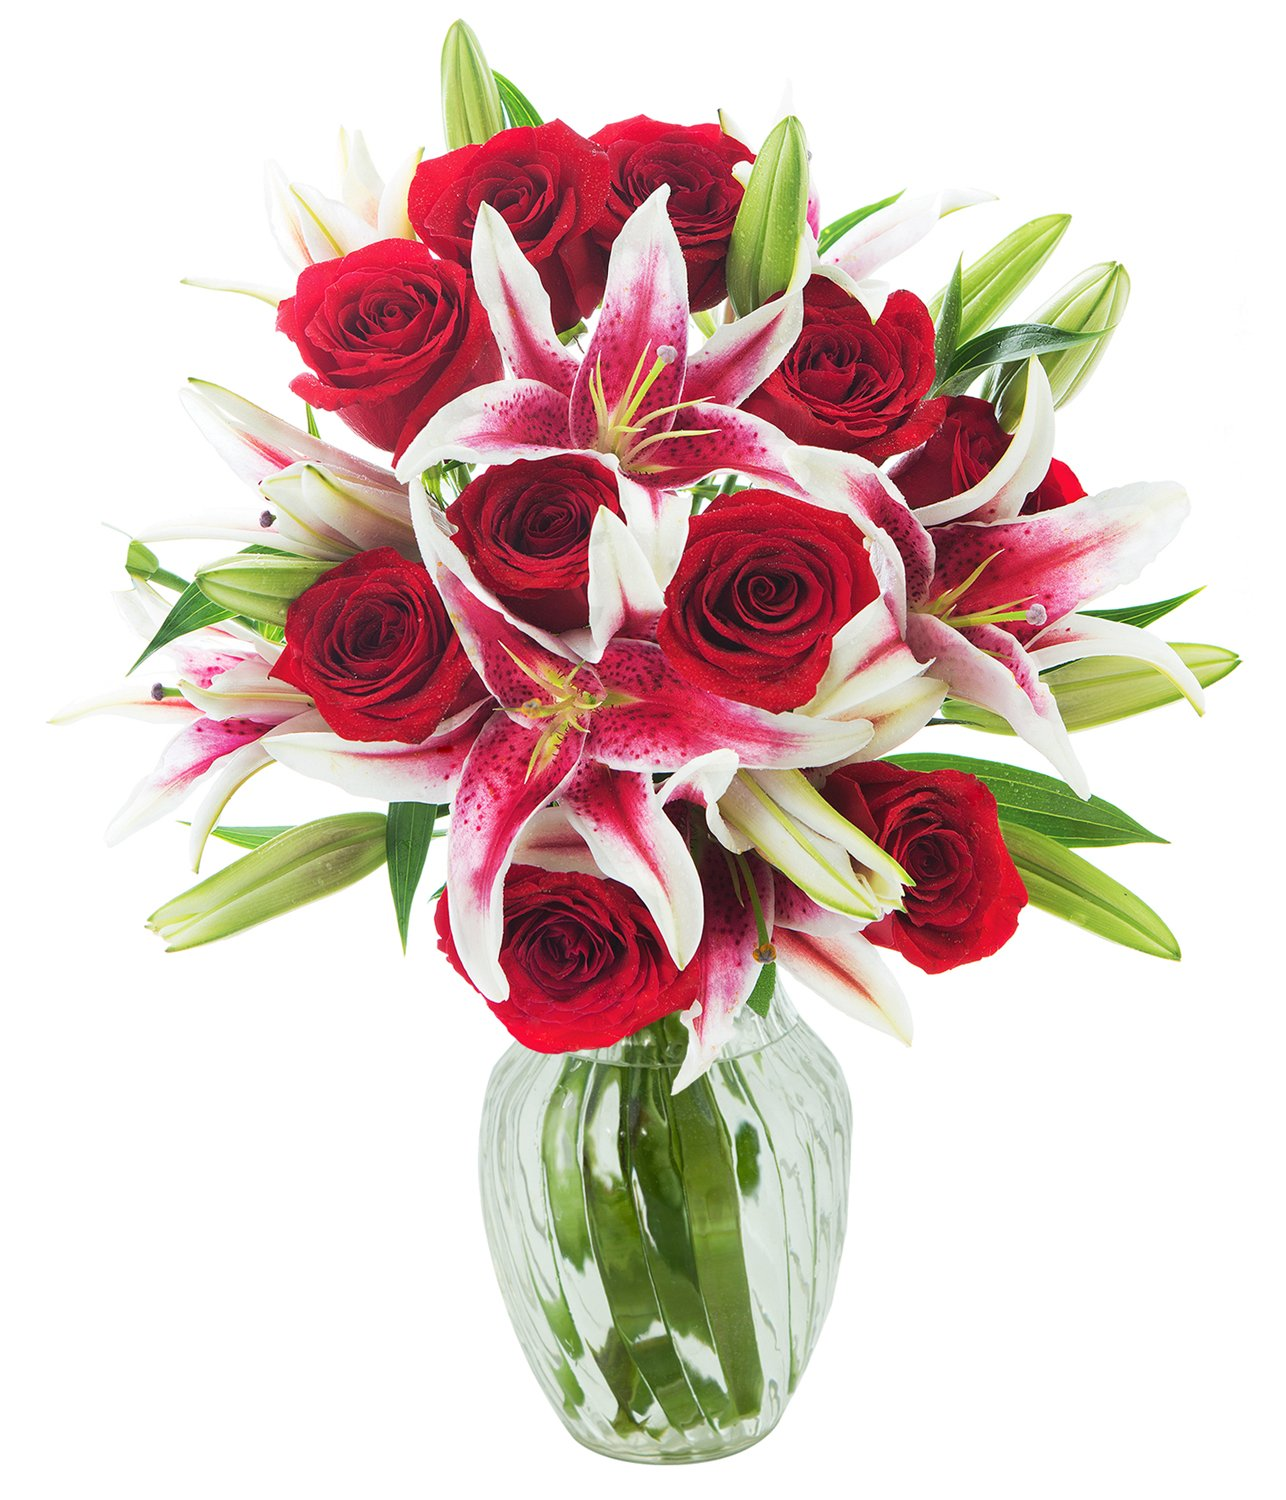 KaBloom Red Shades of Love Mixed Bouquet of 12 Red Roses and 5 Stargazer Lilies with Vase